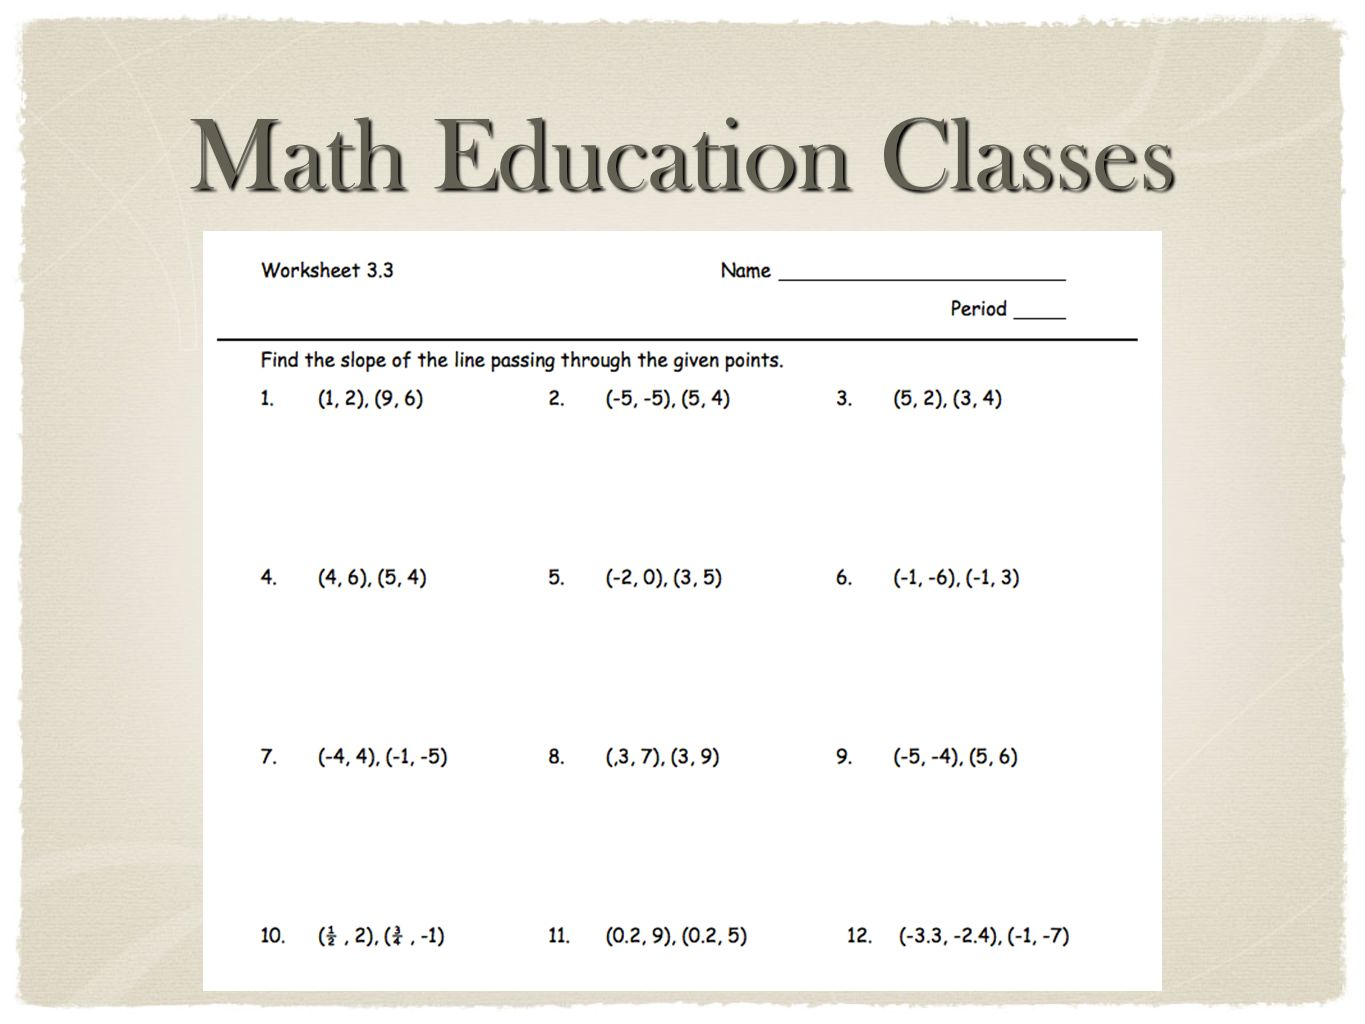 Math Education Classes